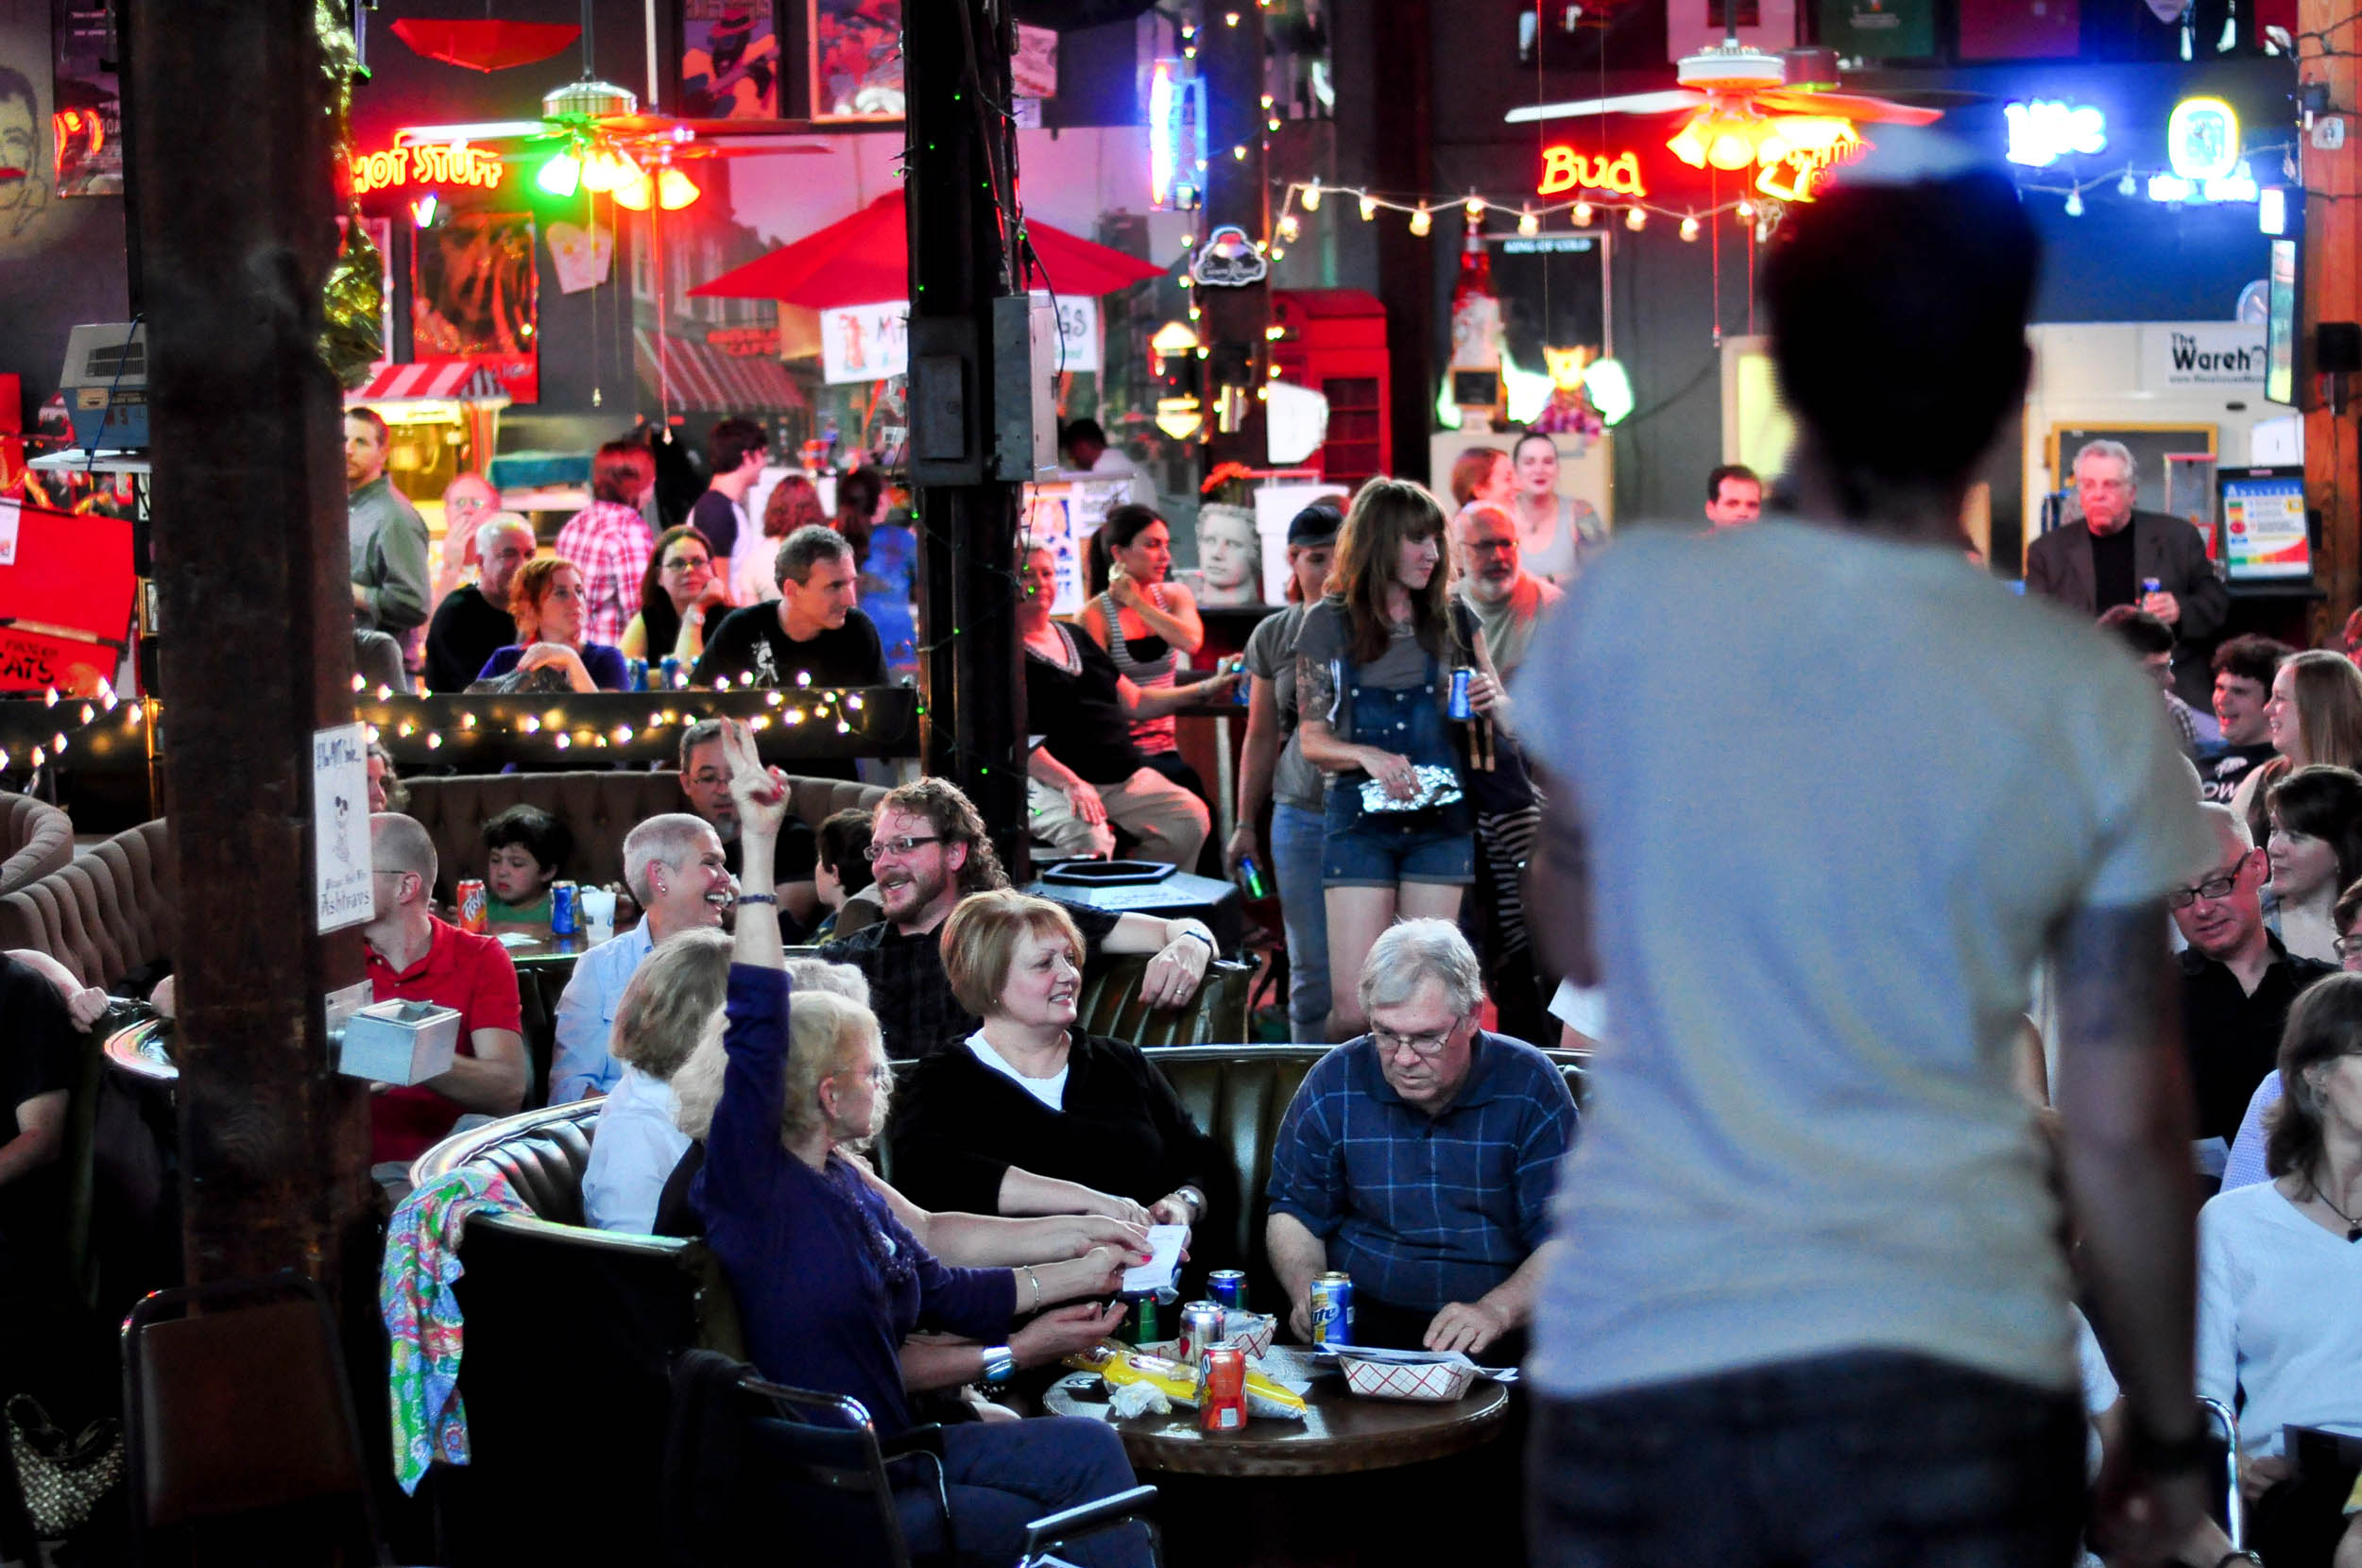 Live From Memphis is Memphis Music, Film, Art and Culture